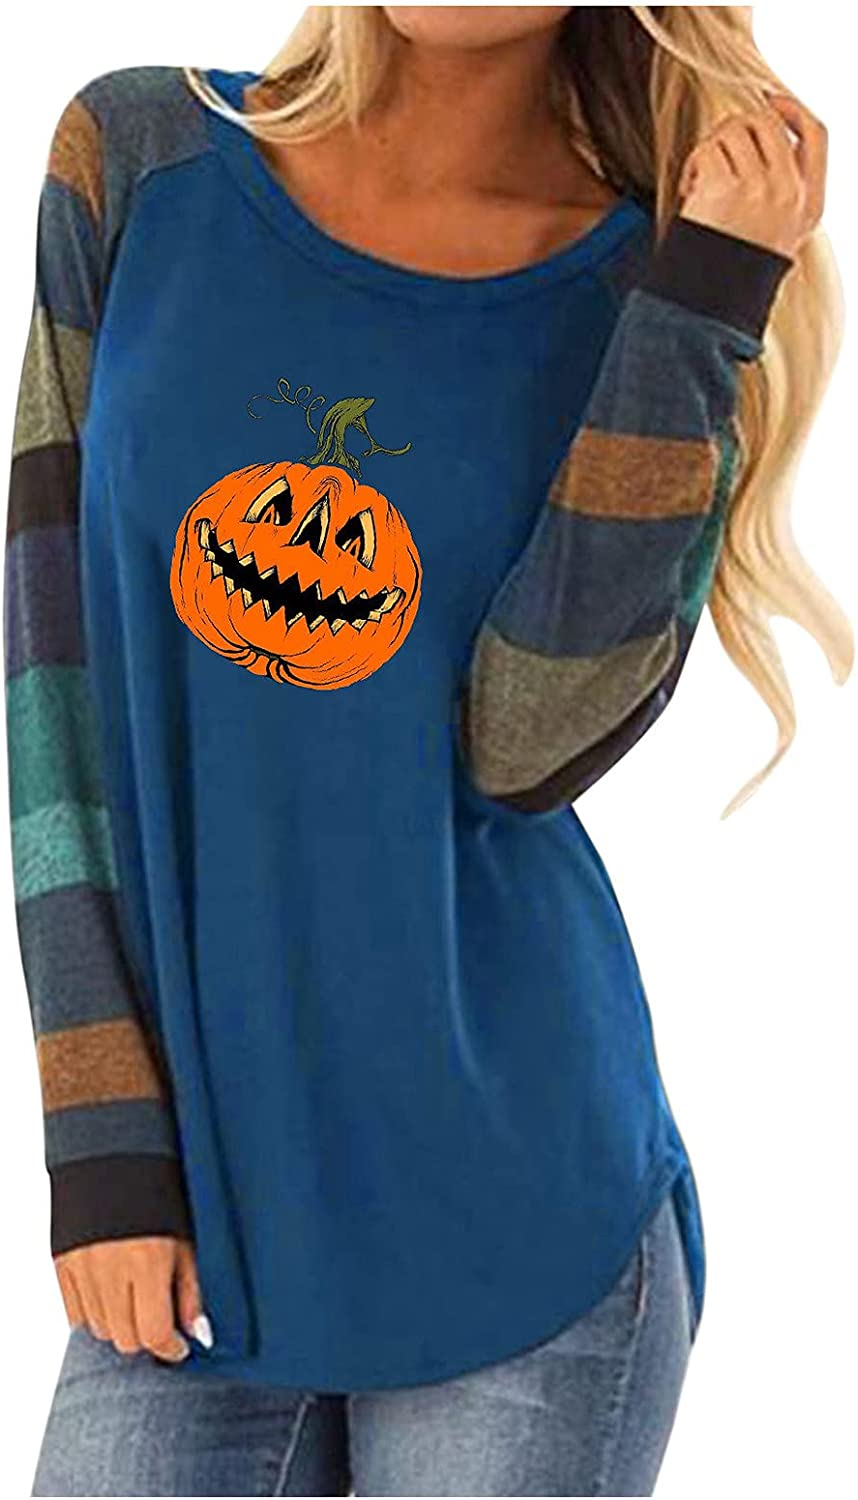 Halloween Long Sleeve Blouse for Women,Casual Round Neck Witch Ghost Pumpkin Funny Cute Print Sweatshirts Shirts Tops